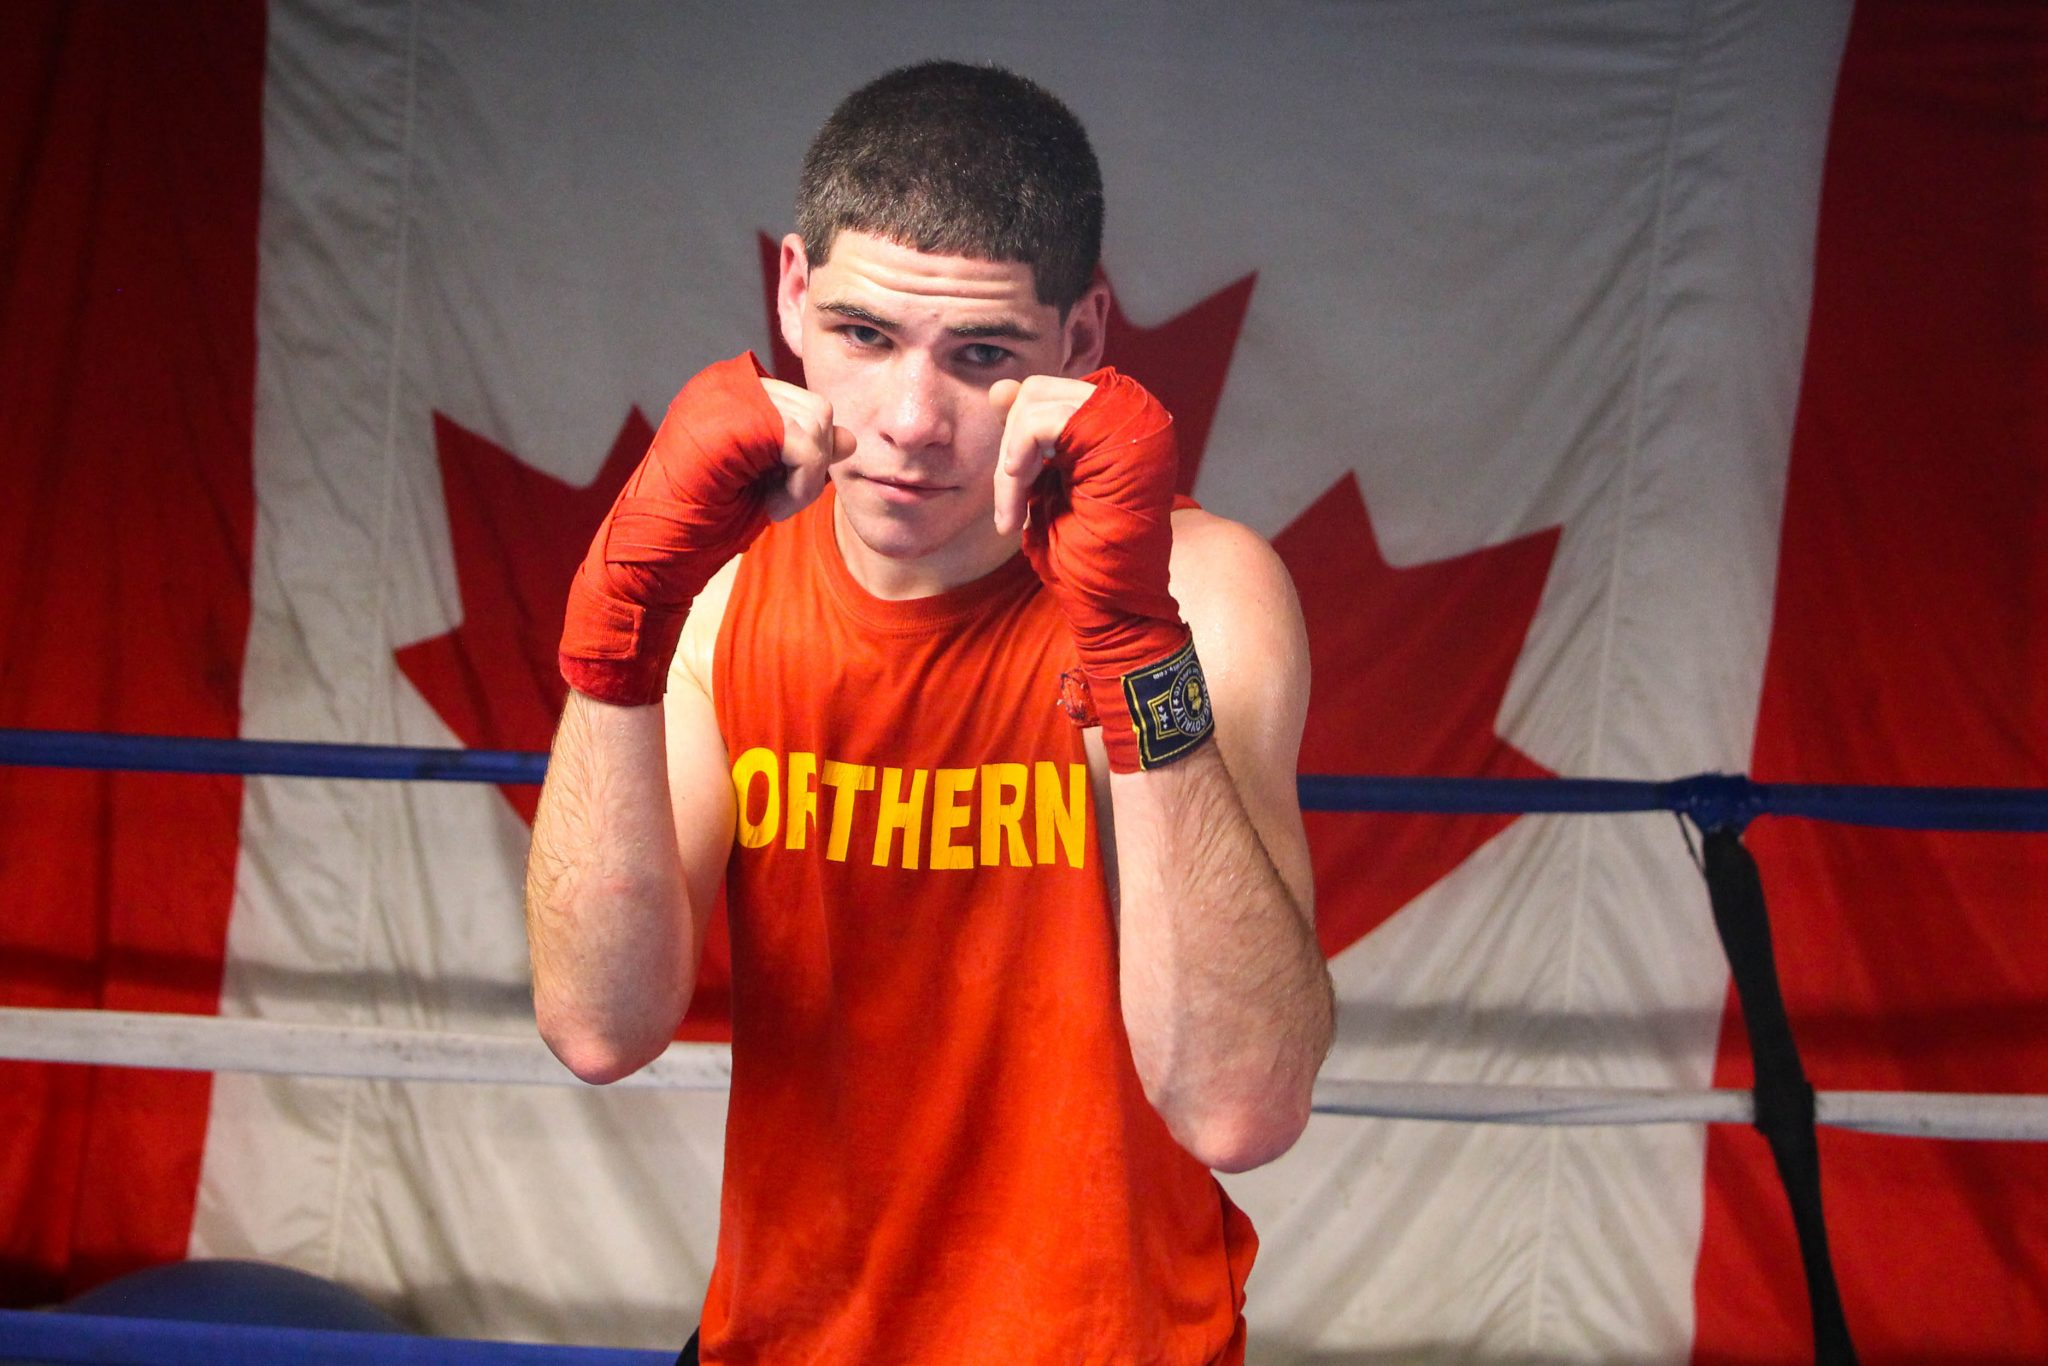 Up-and-coming boxer, Graeme Matthews, at Sully's Boxing Gym. Reppin' Canada. Luke Galati Photograhy